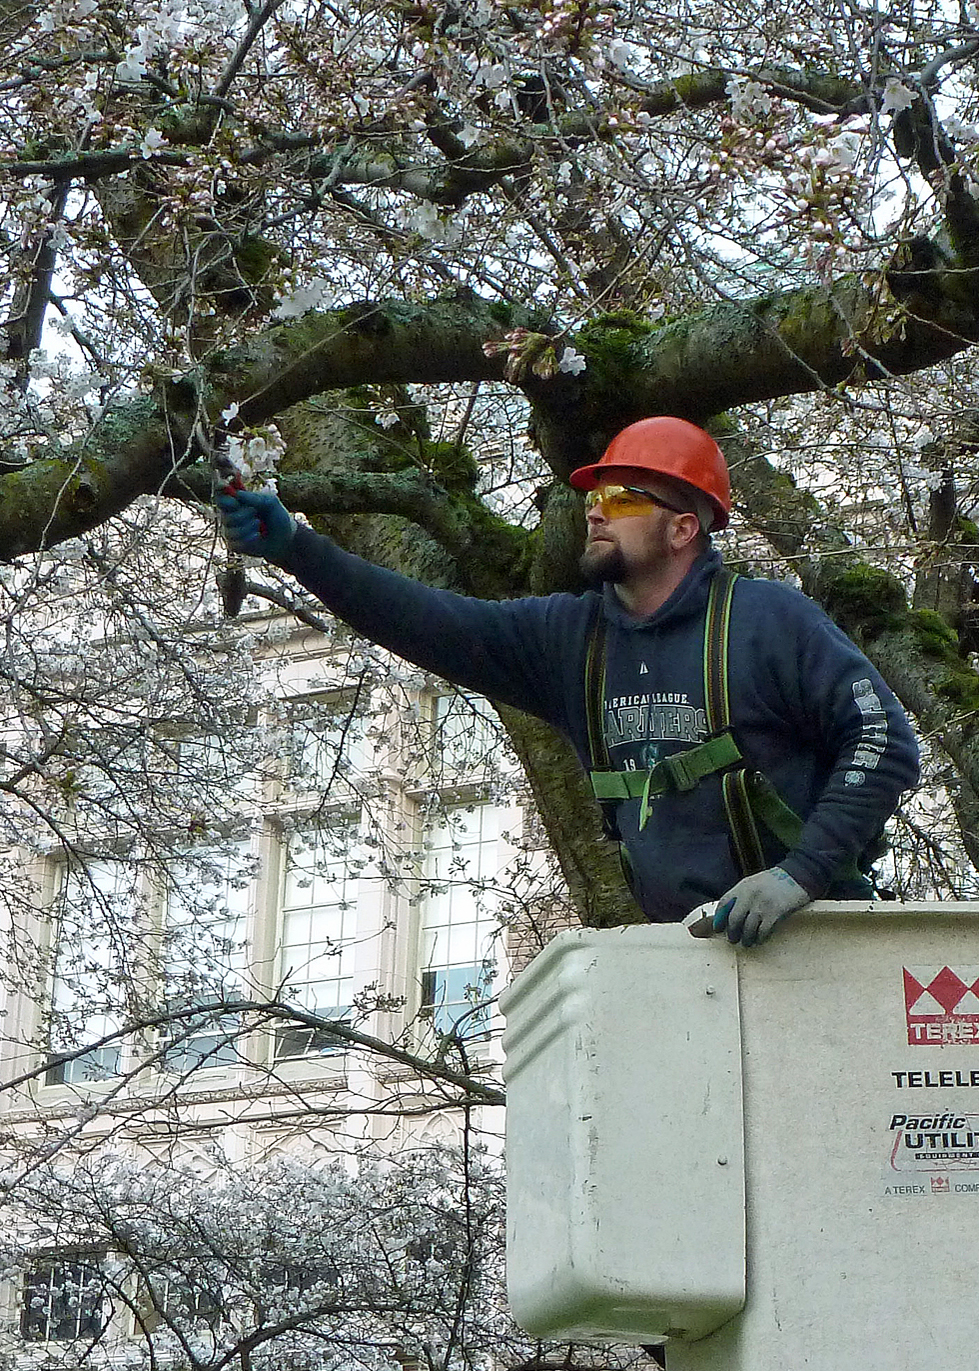 Man in lift bucket uses hand pruners to snip twigs off tree